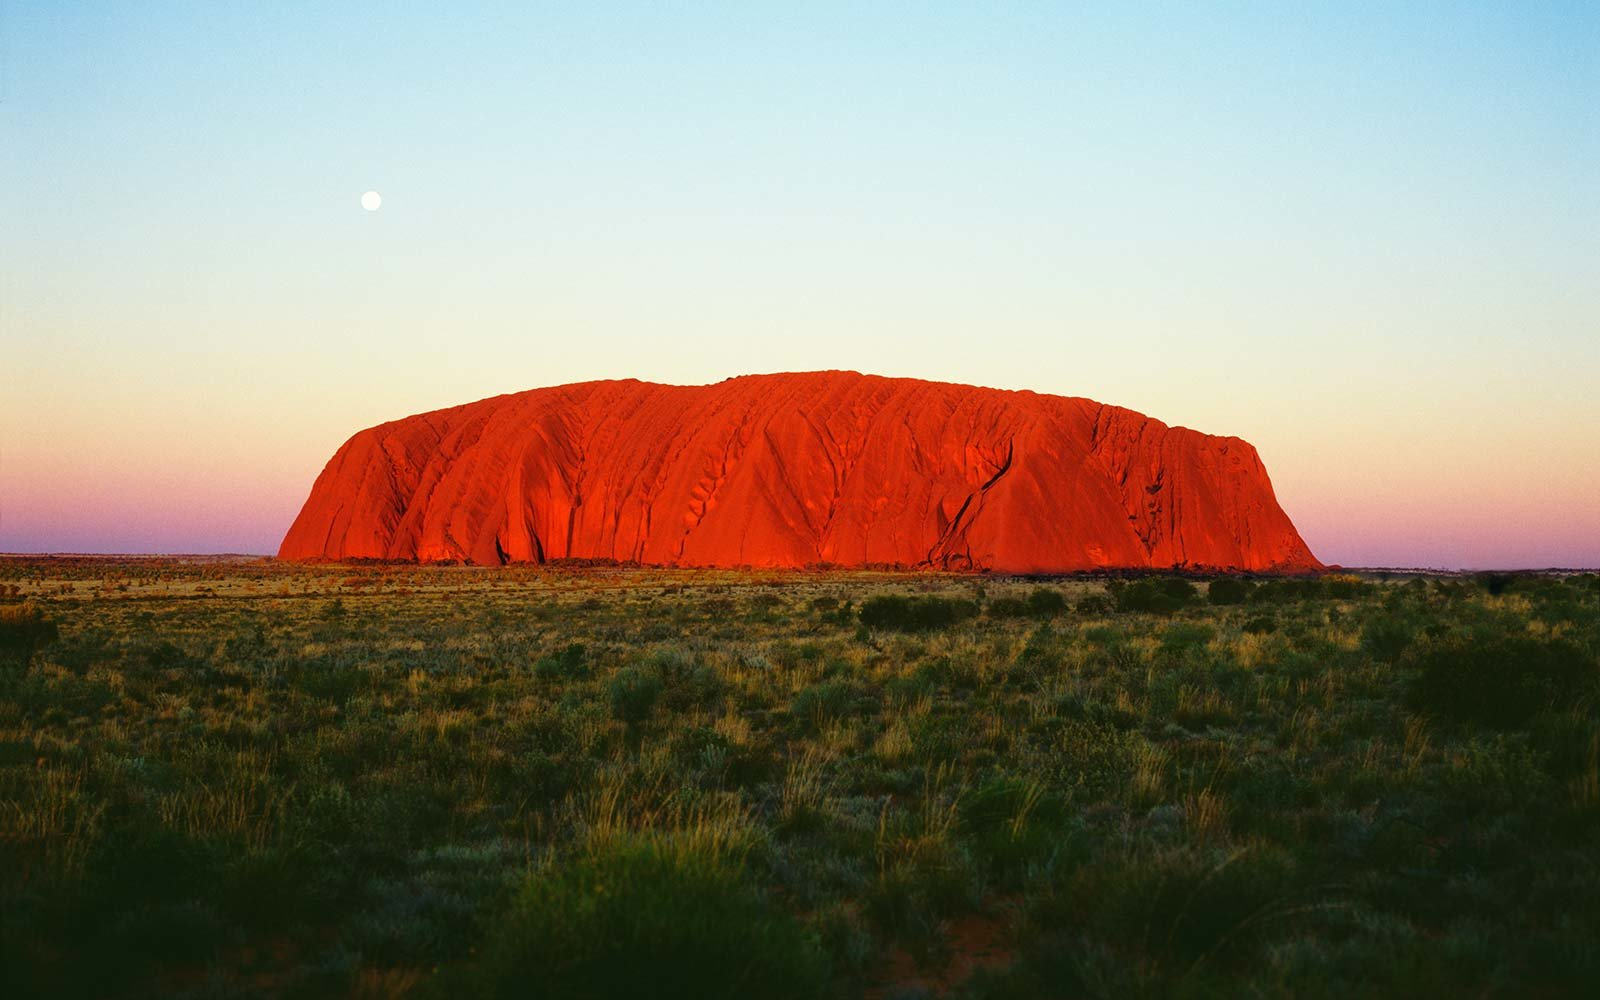 uluru rock landmark australia nature landscape